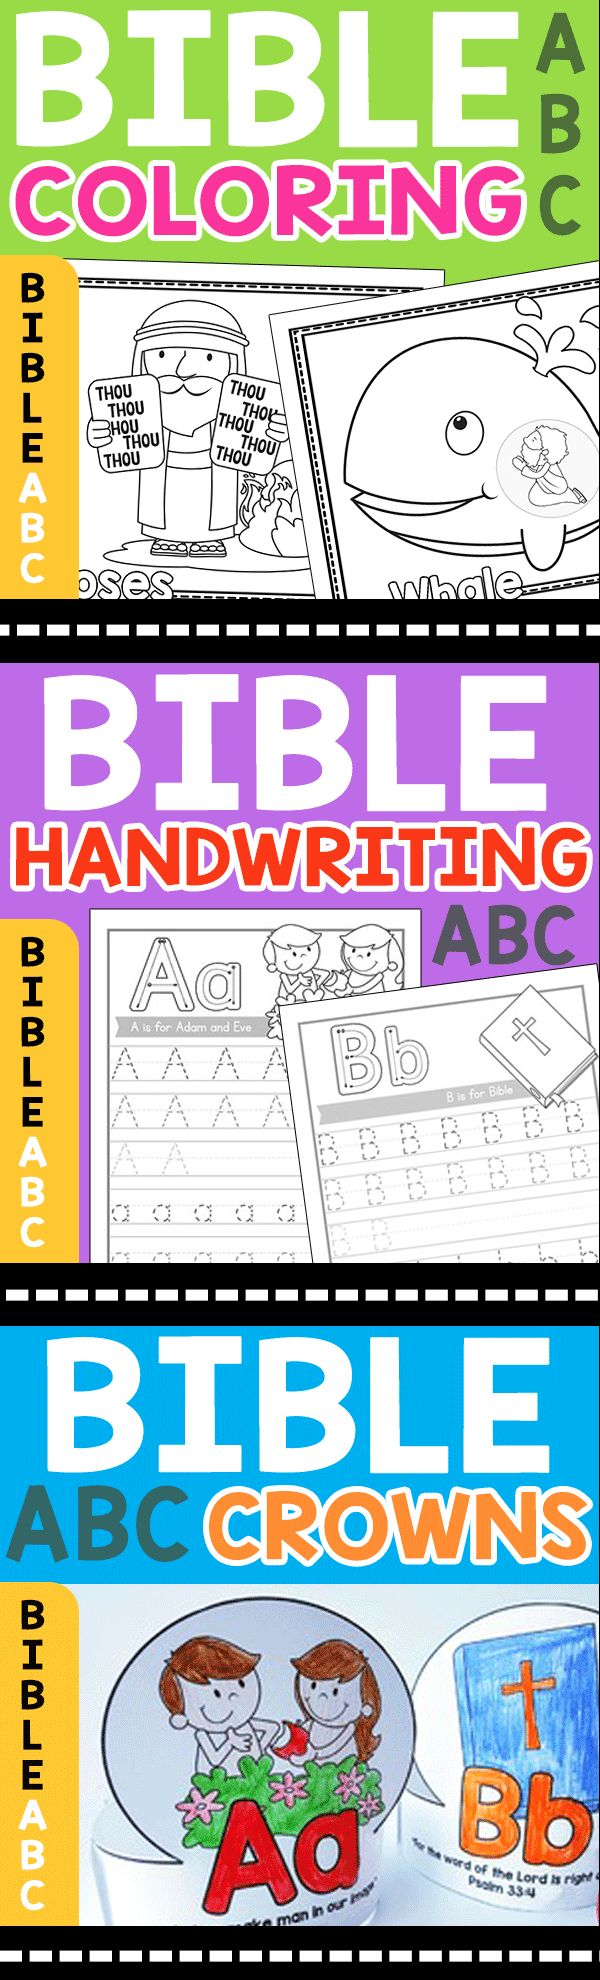 Bible Coloring Pages, Bible Handwriting Worksheets, Bible Crowns, Bible Charts, Bible Flashcards, Bible ABC and so much more!!